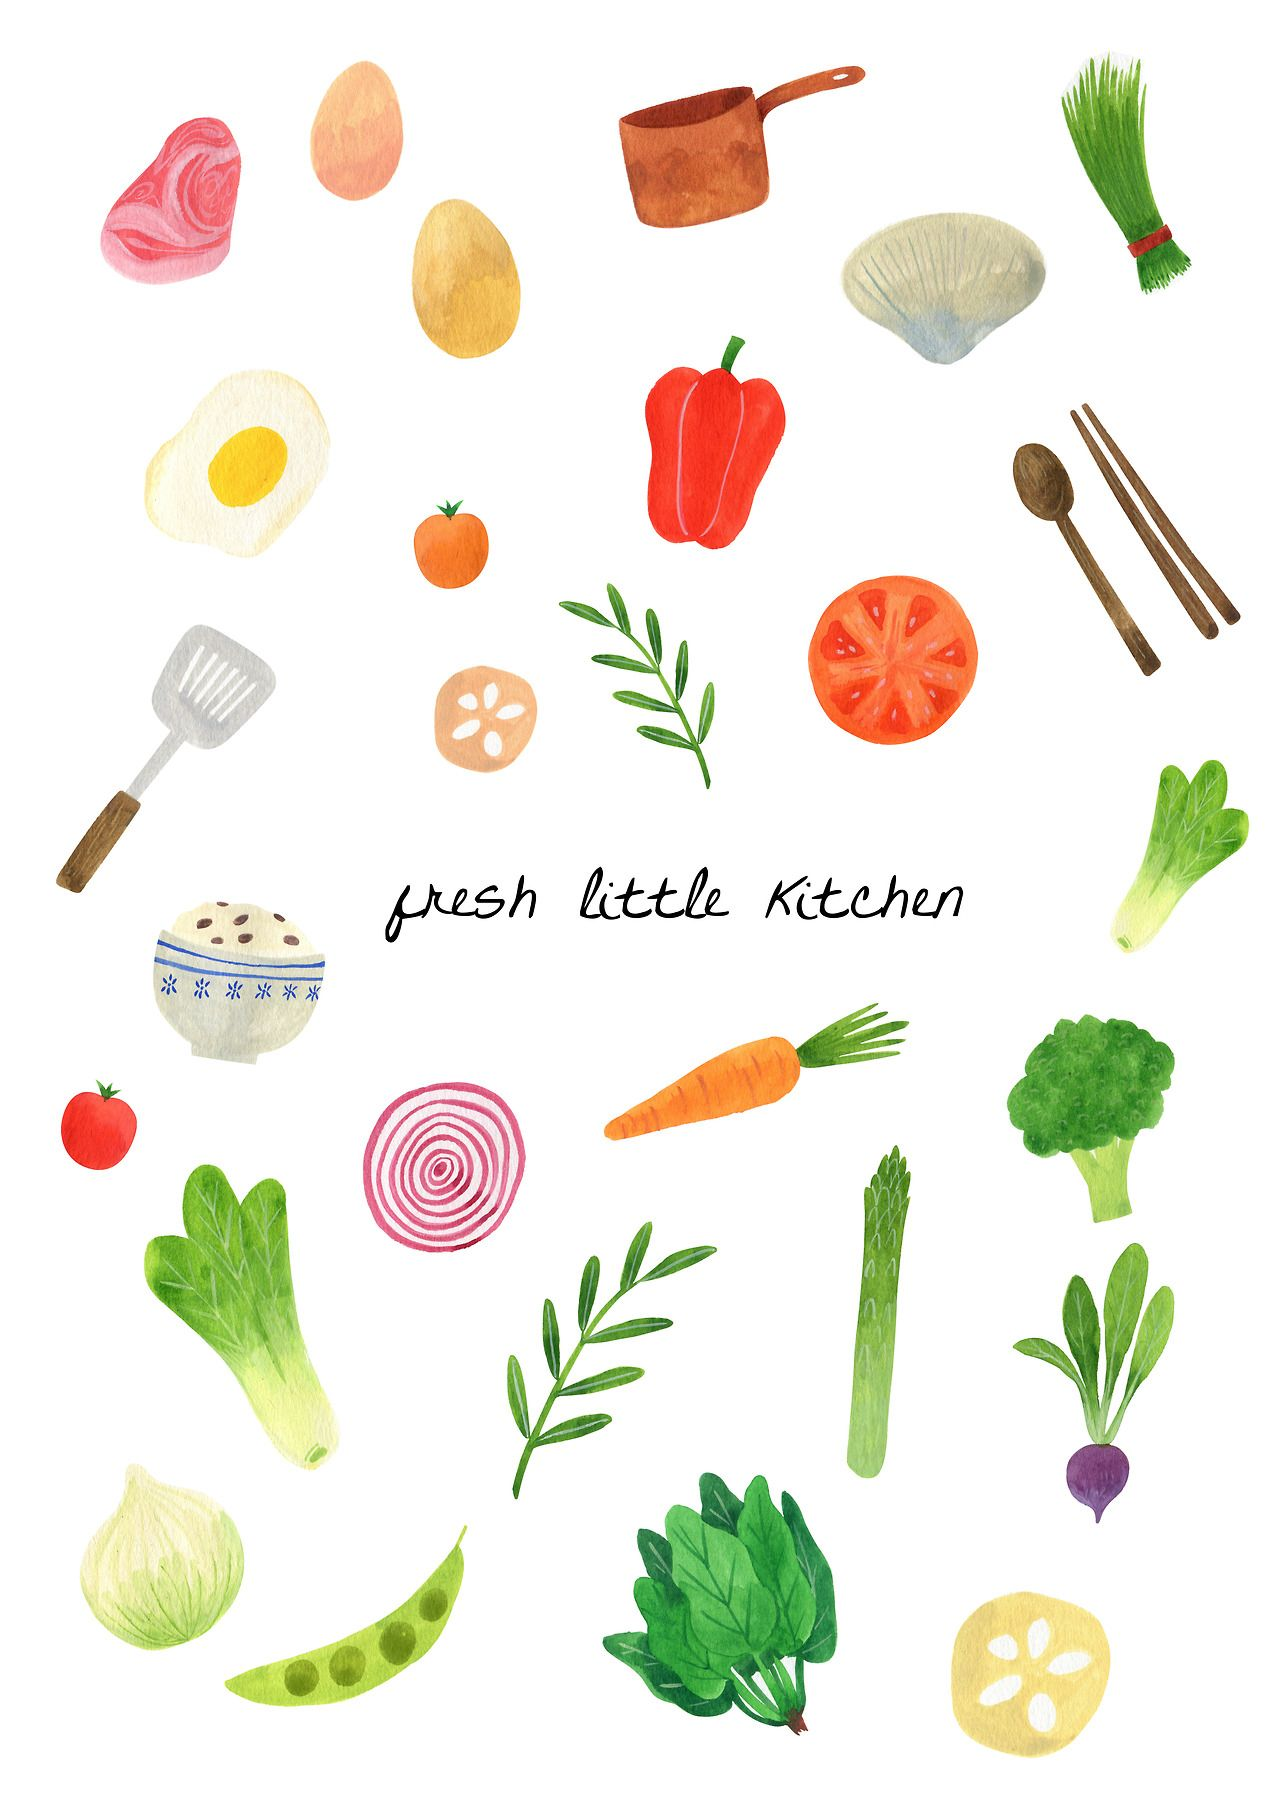 jiminyoon - fresh little kitchen | menu ideas | pinterest | 野菜